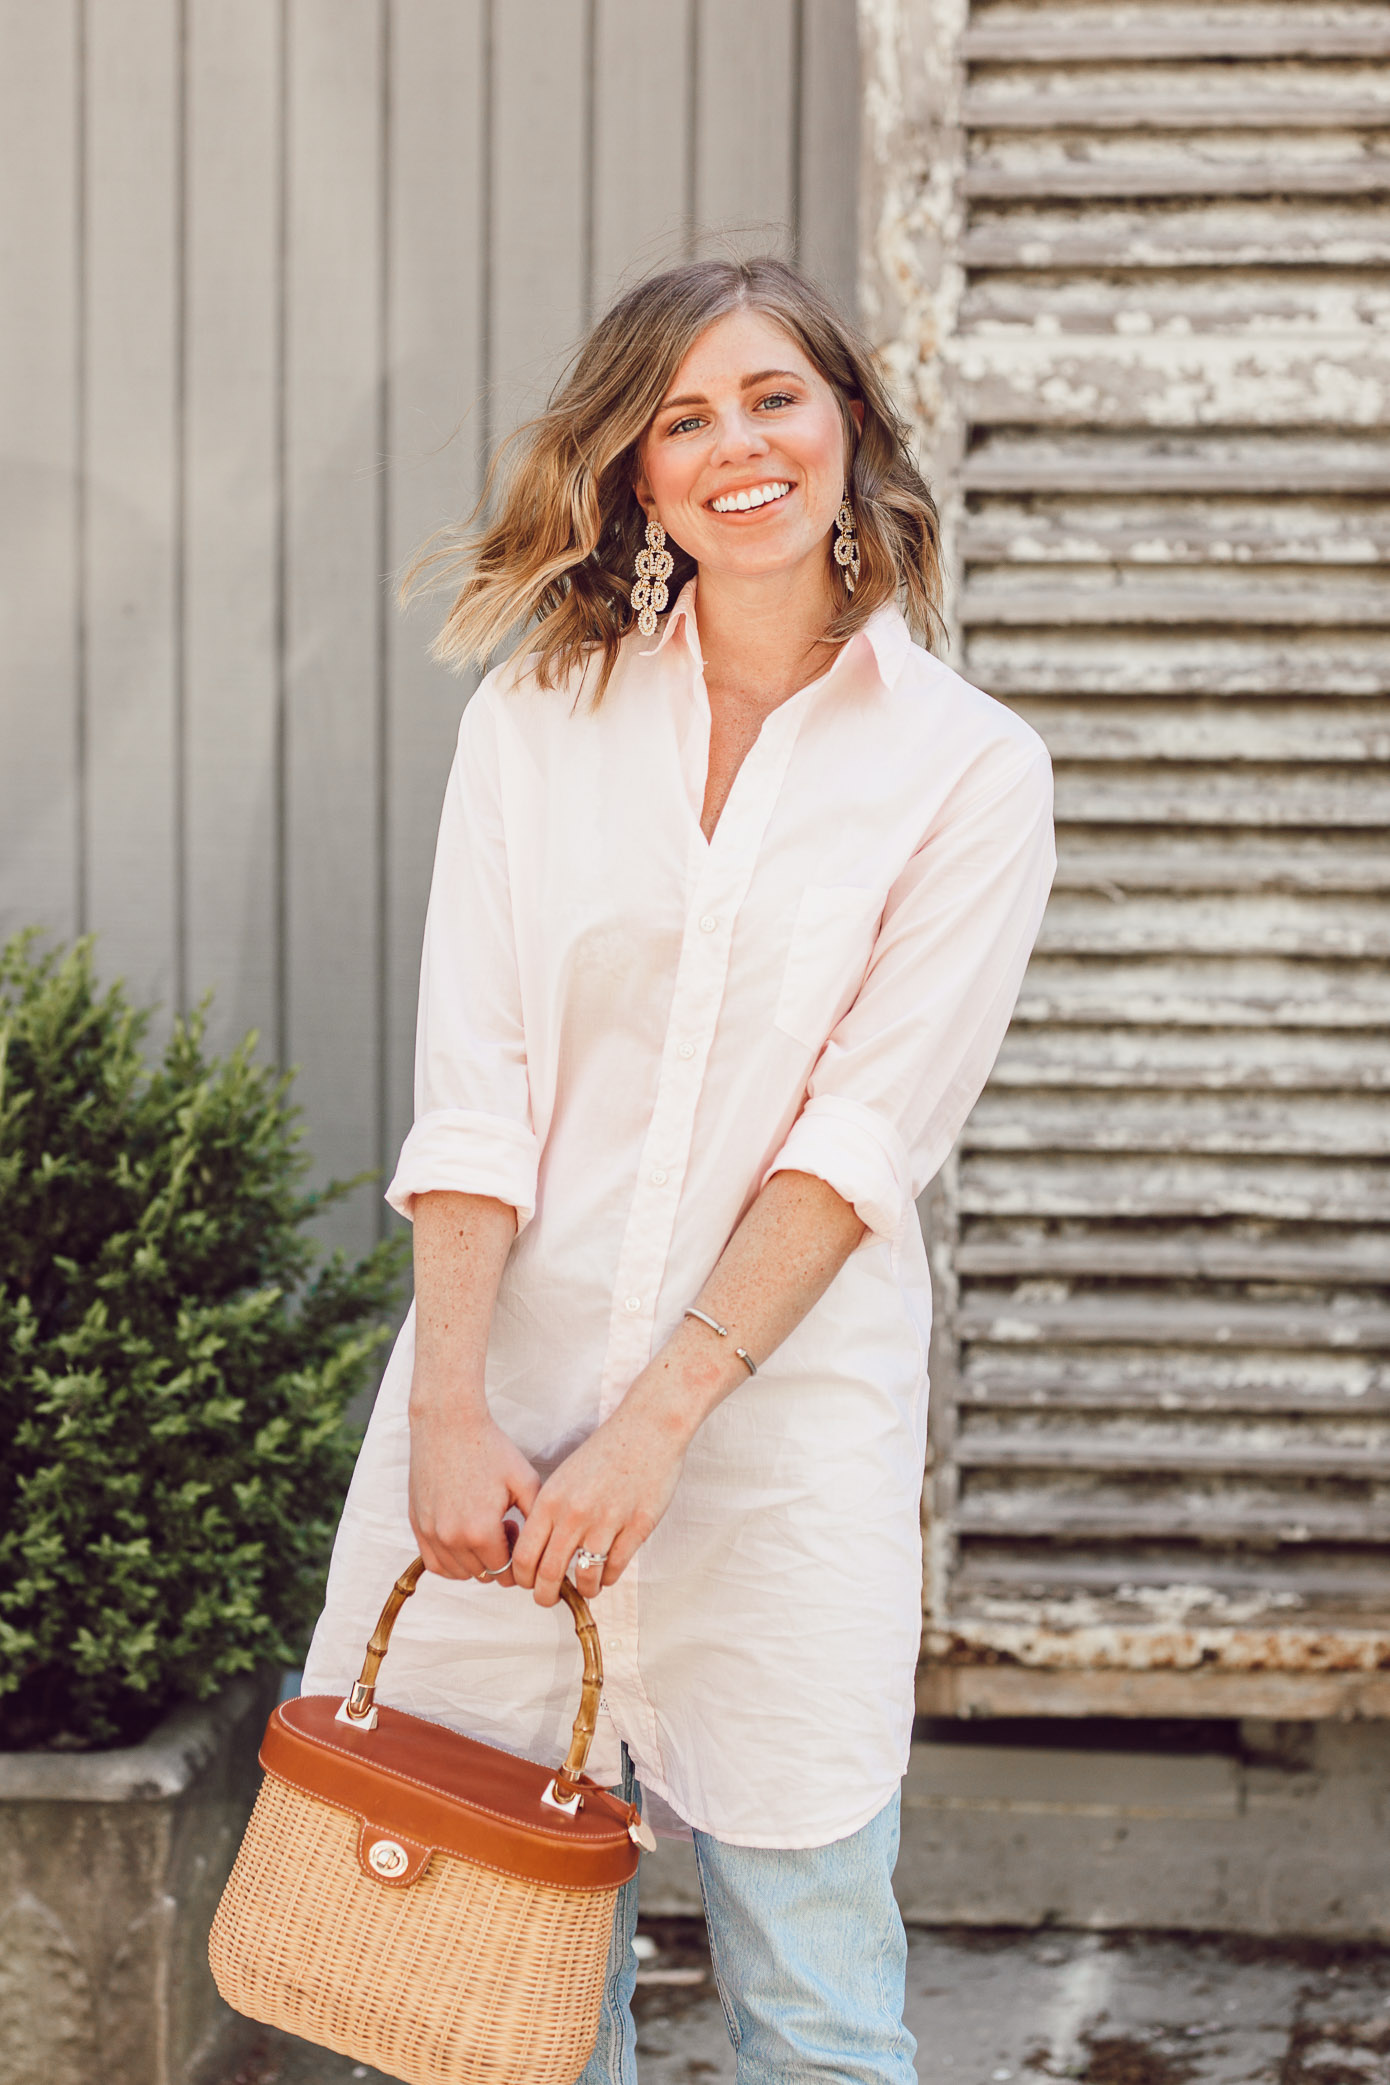 Laura Leigh of Louella Reese shows how to style an oversized button down shirt for spring | ft. Frank & Eileen, Everlane, Jack Rogers, and J.McLaughlin | Louella Reese